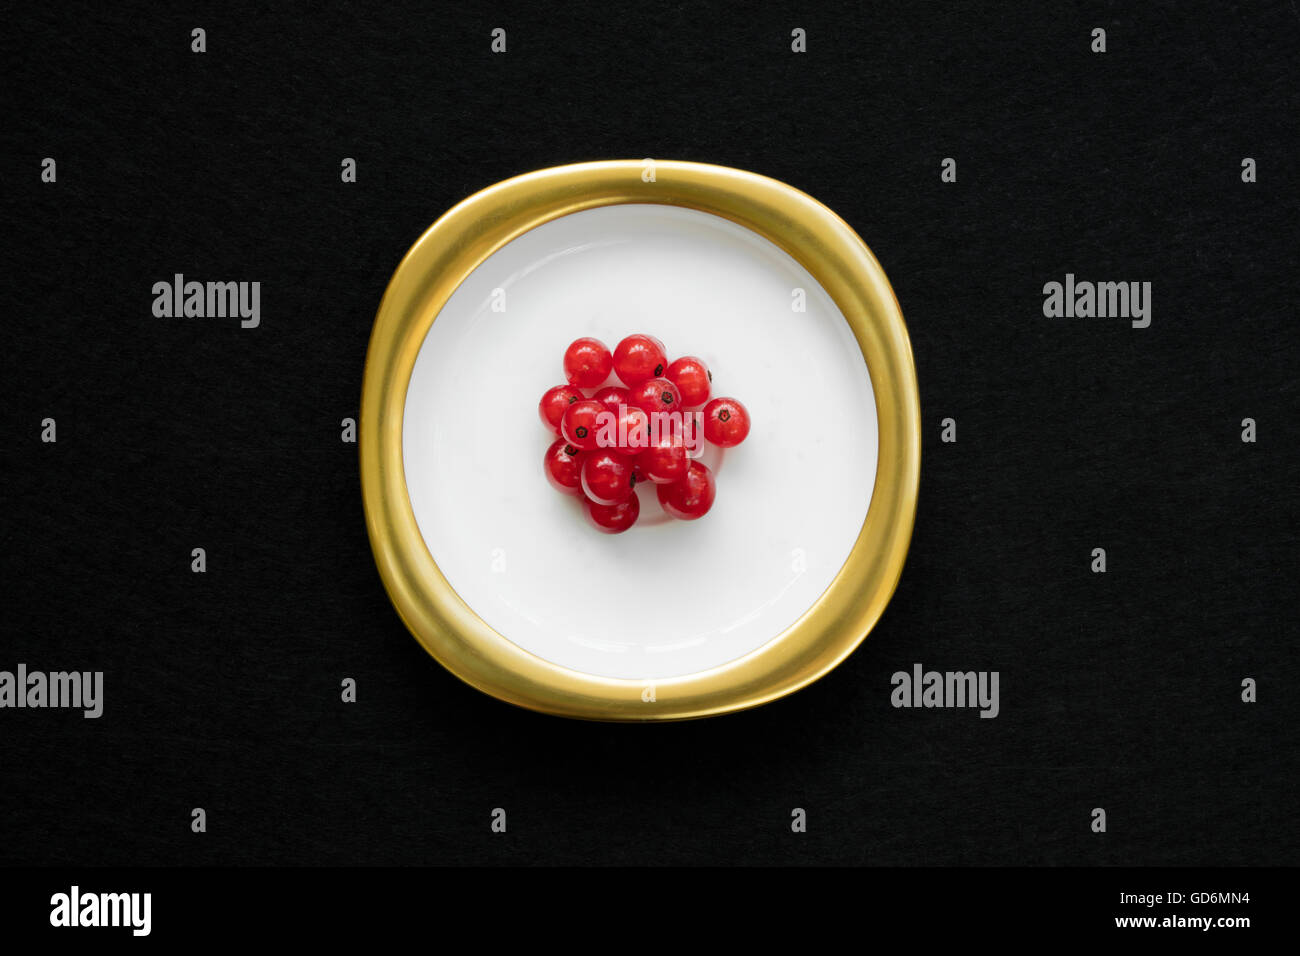 Group of red currants placed on a golden dish with isolated black background. - Stock Image